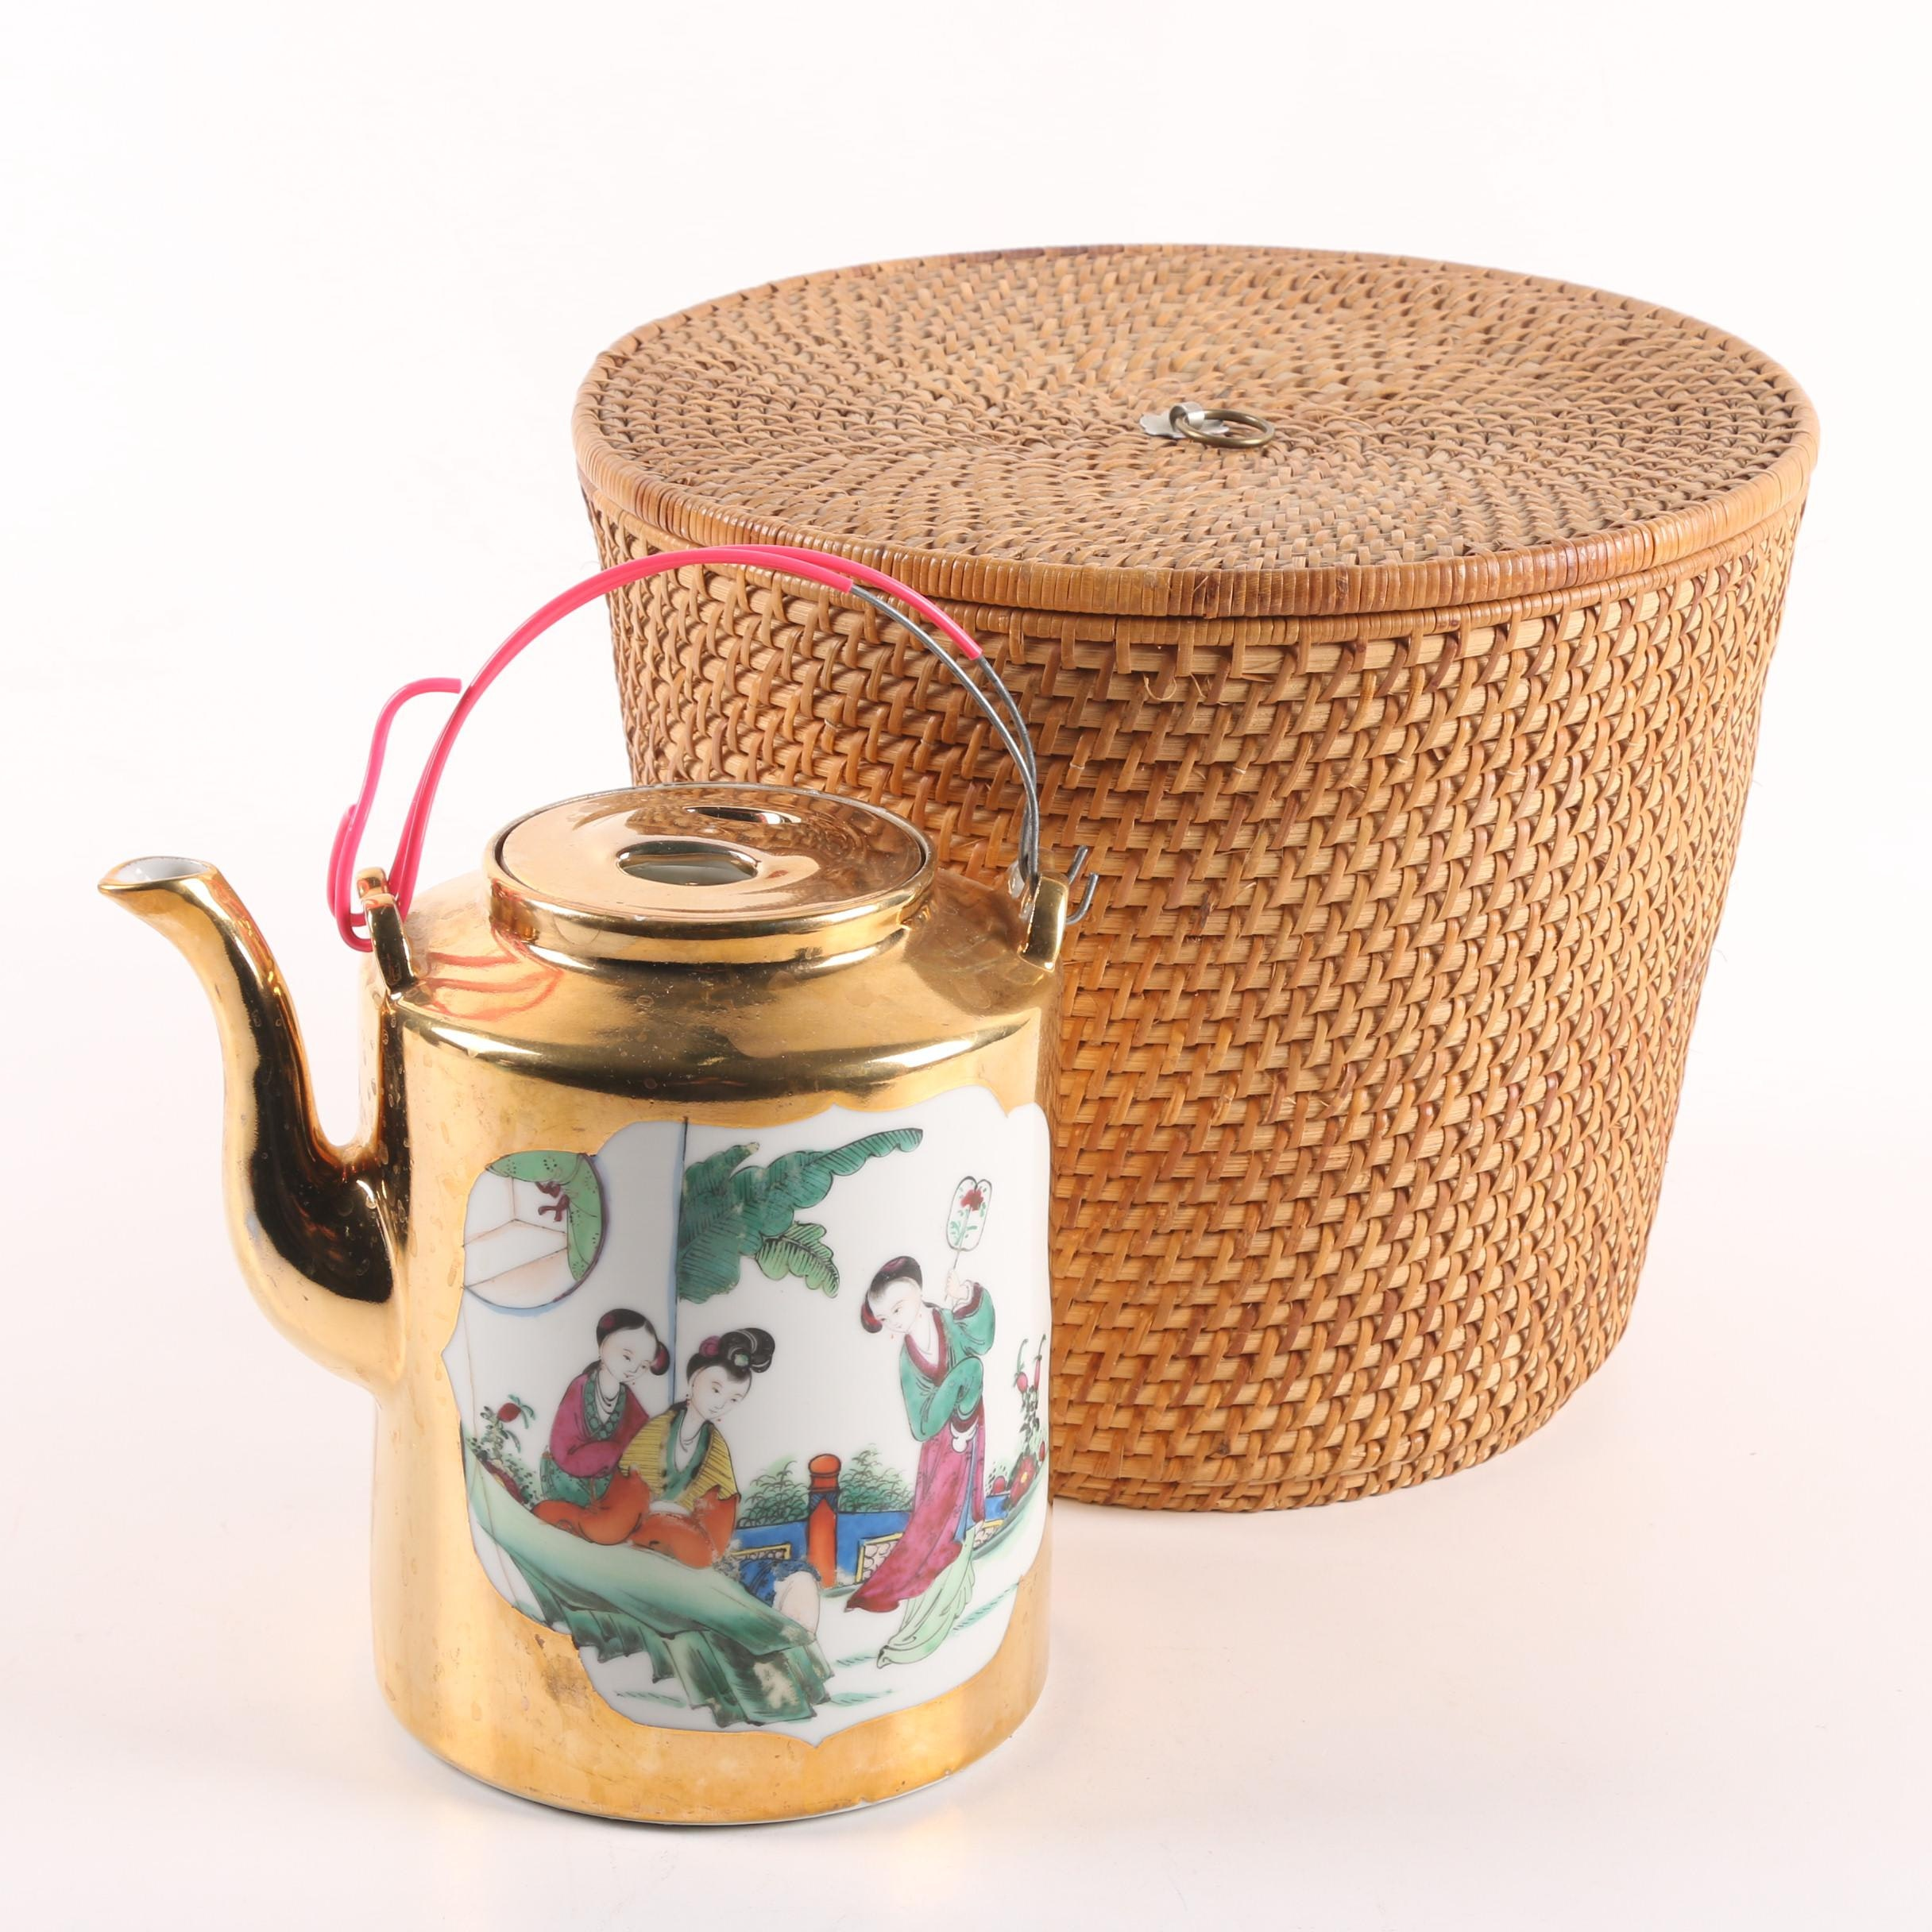 Hand-Painted Chinese Traveling Teapot in Fitted Basket